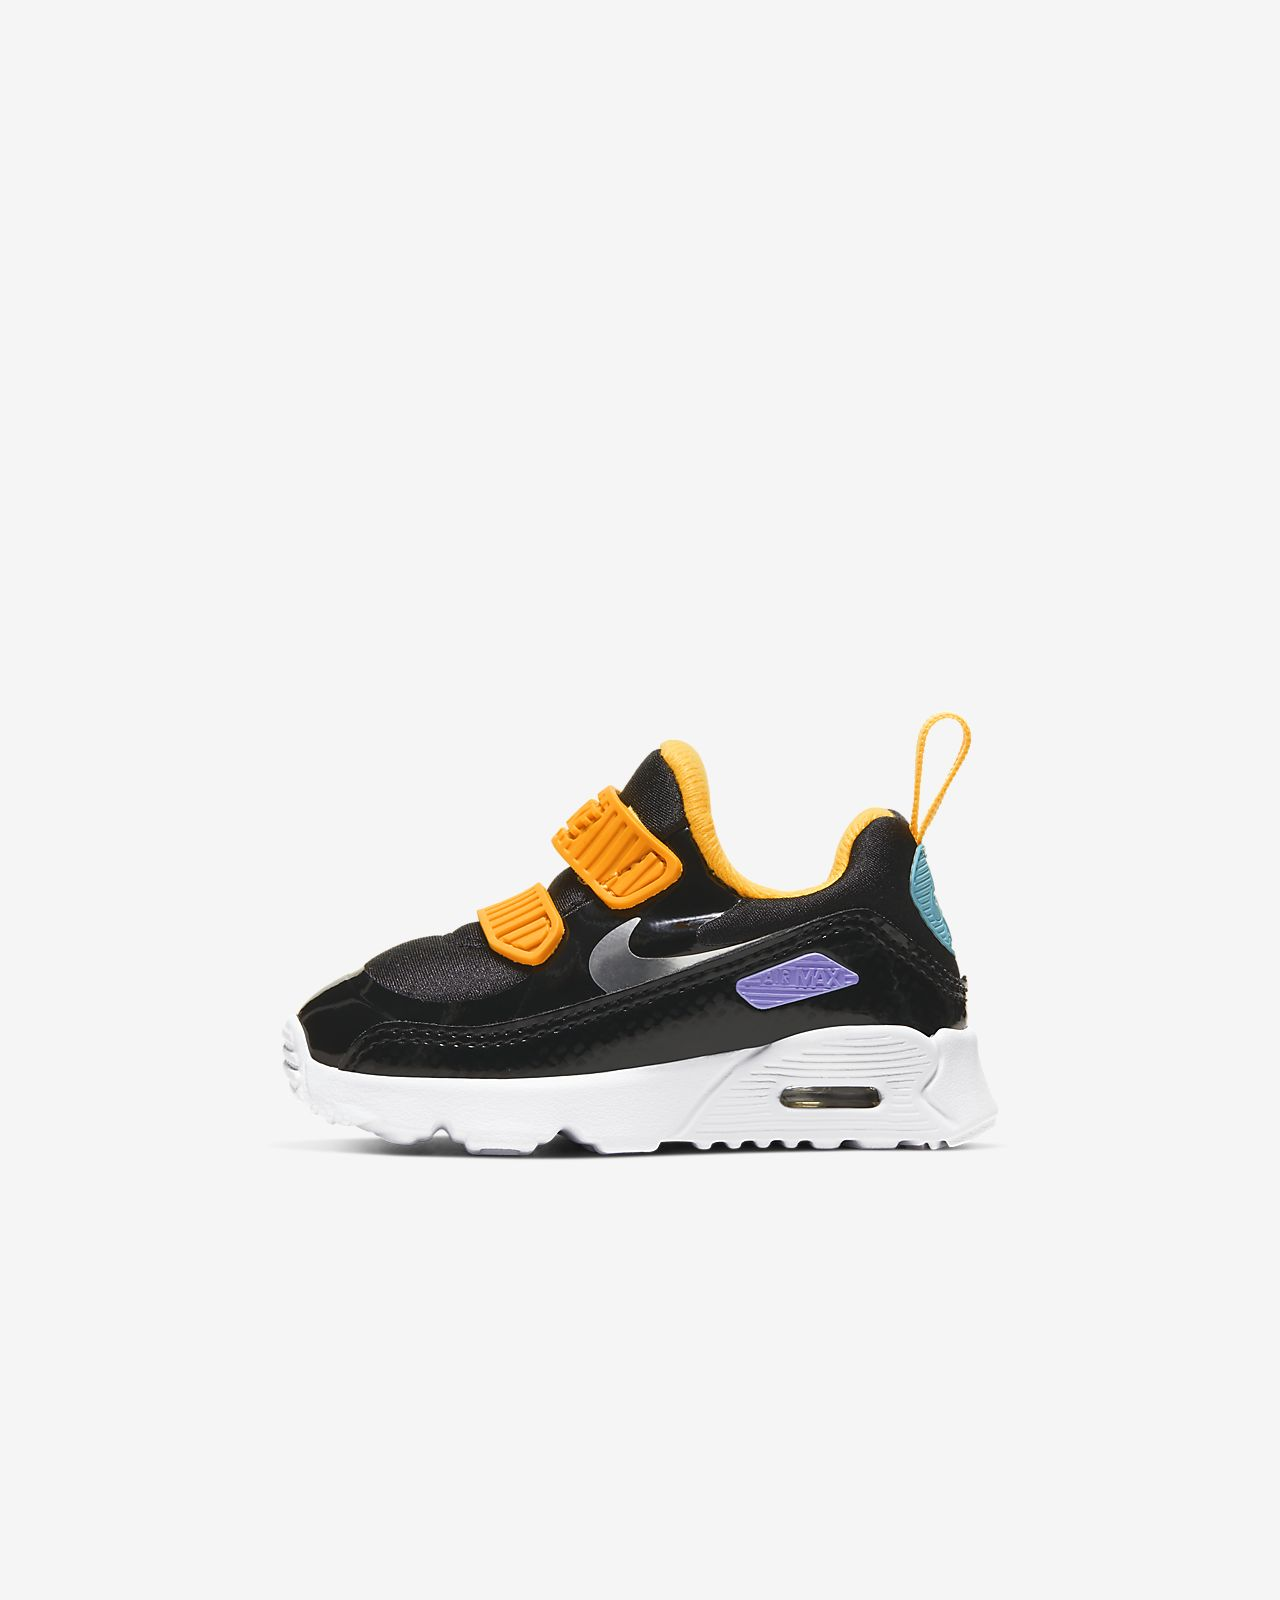 Nike Air Max Tiny 90 Baby and Toddler Shoe